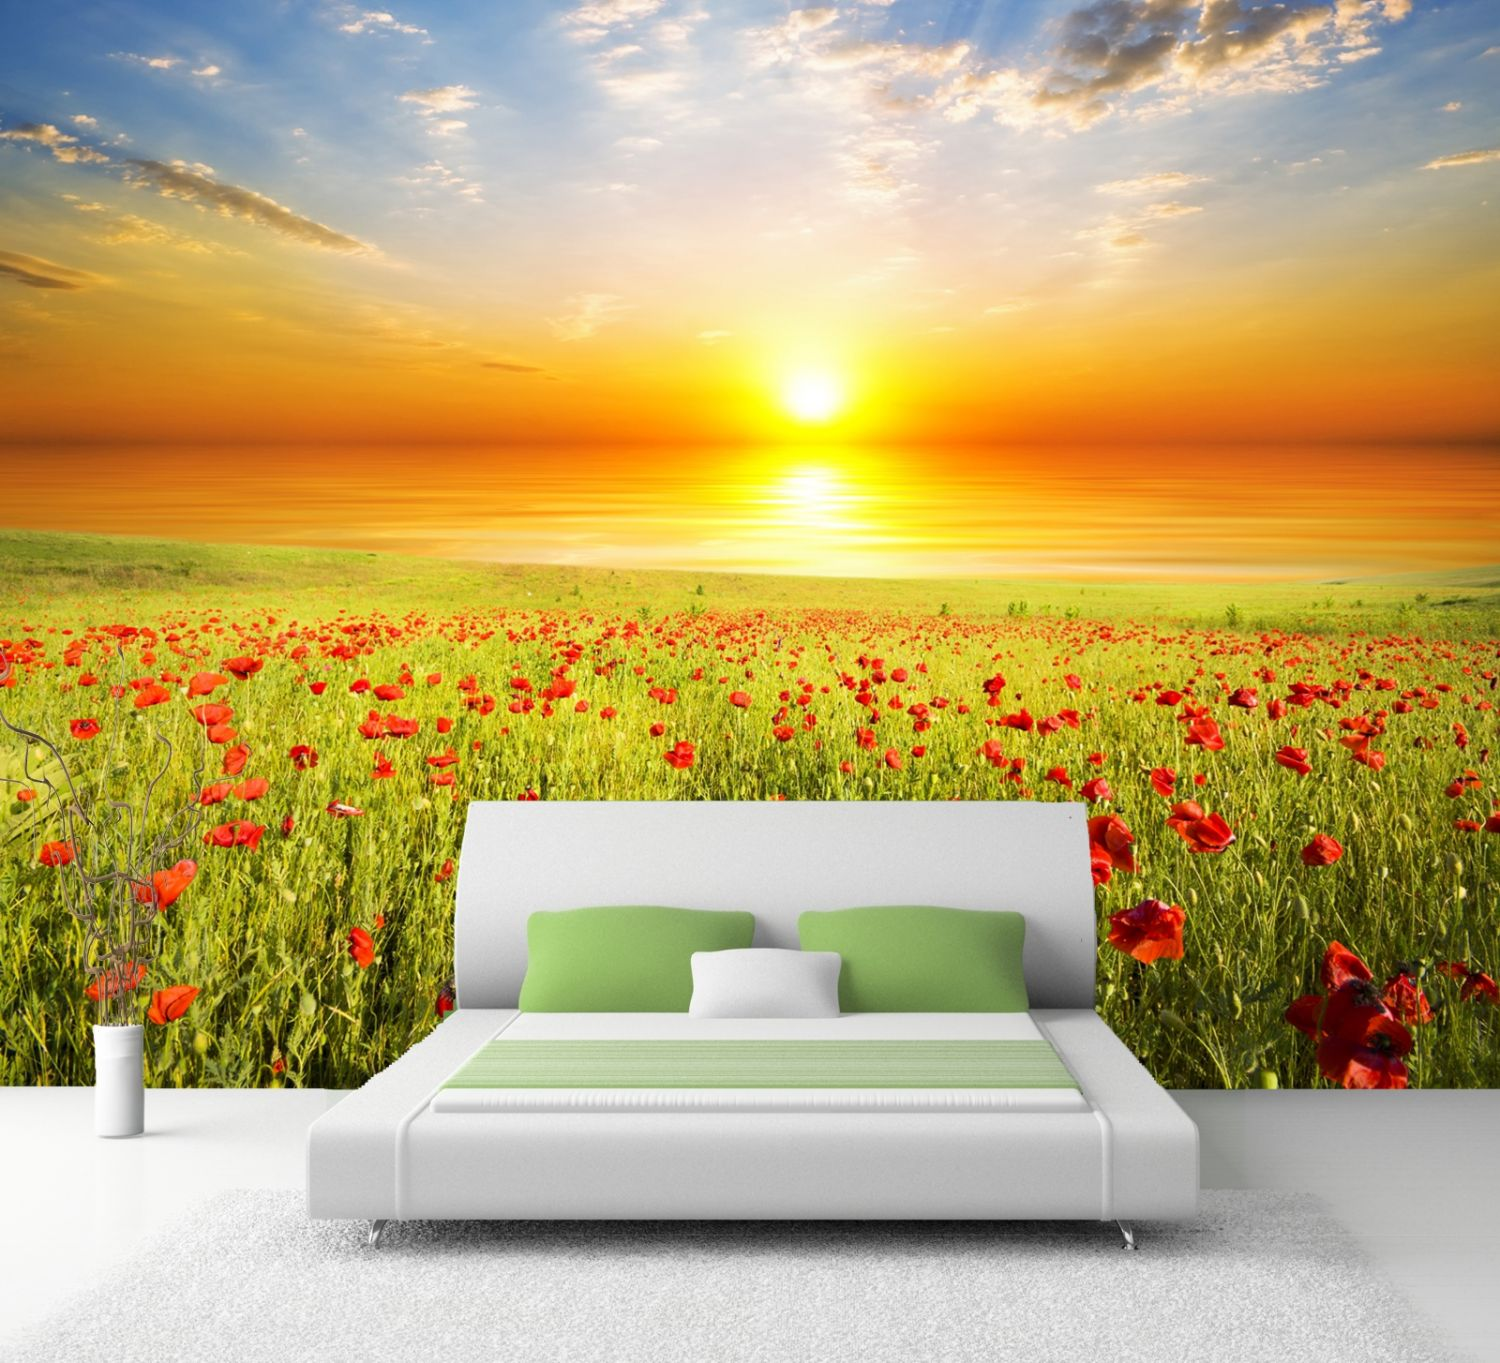 xxl poster fototapete wandtapete vlies natur mohnblumen wiese im sonnenaufgang ebay. Black Bedroom Furniture Sets. Home Design Ideas